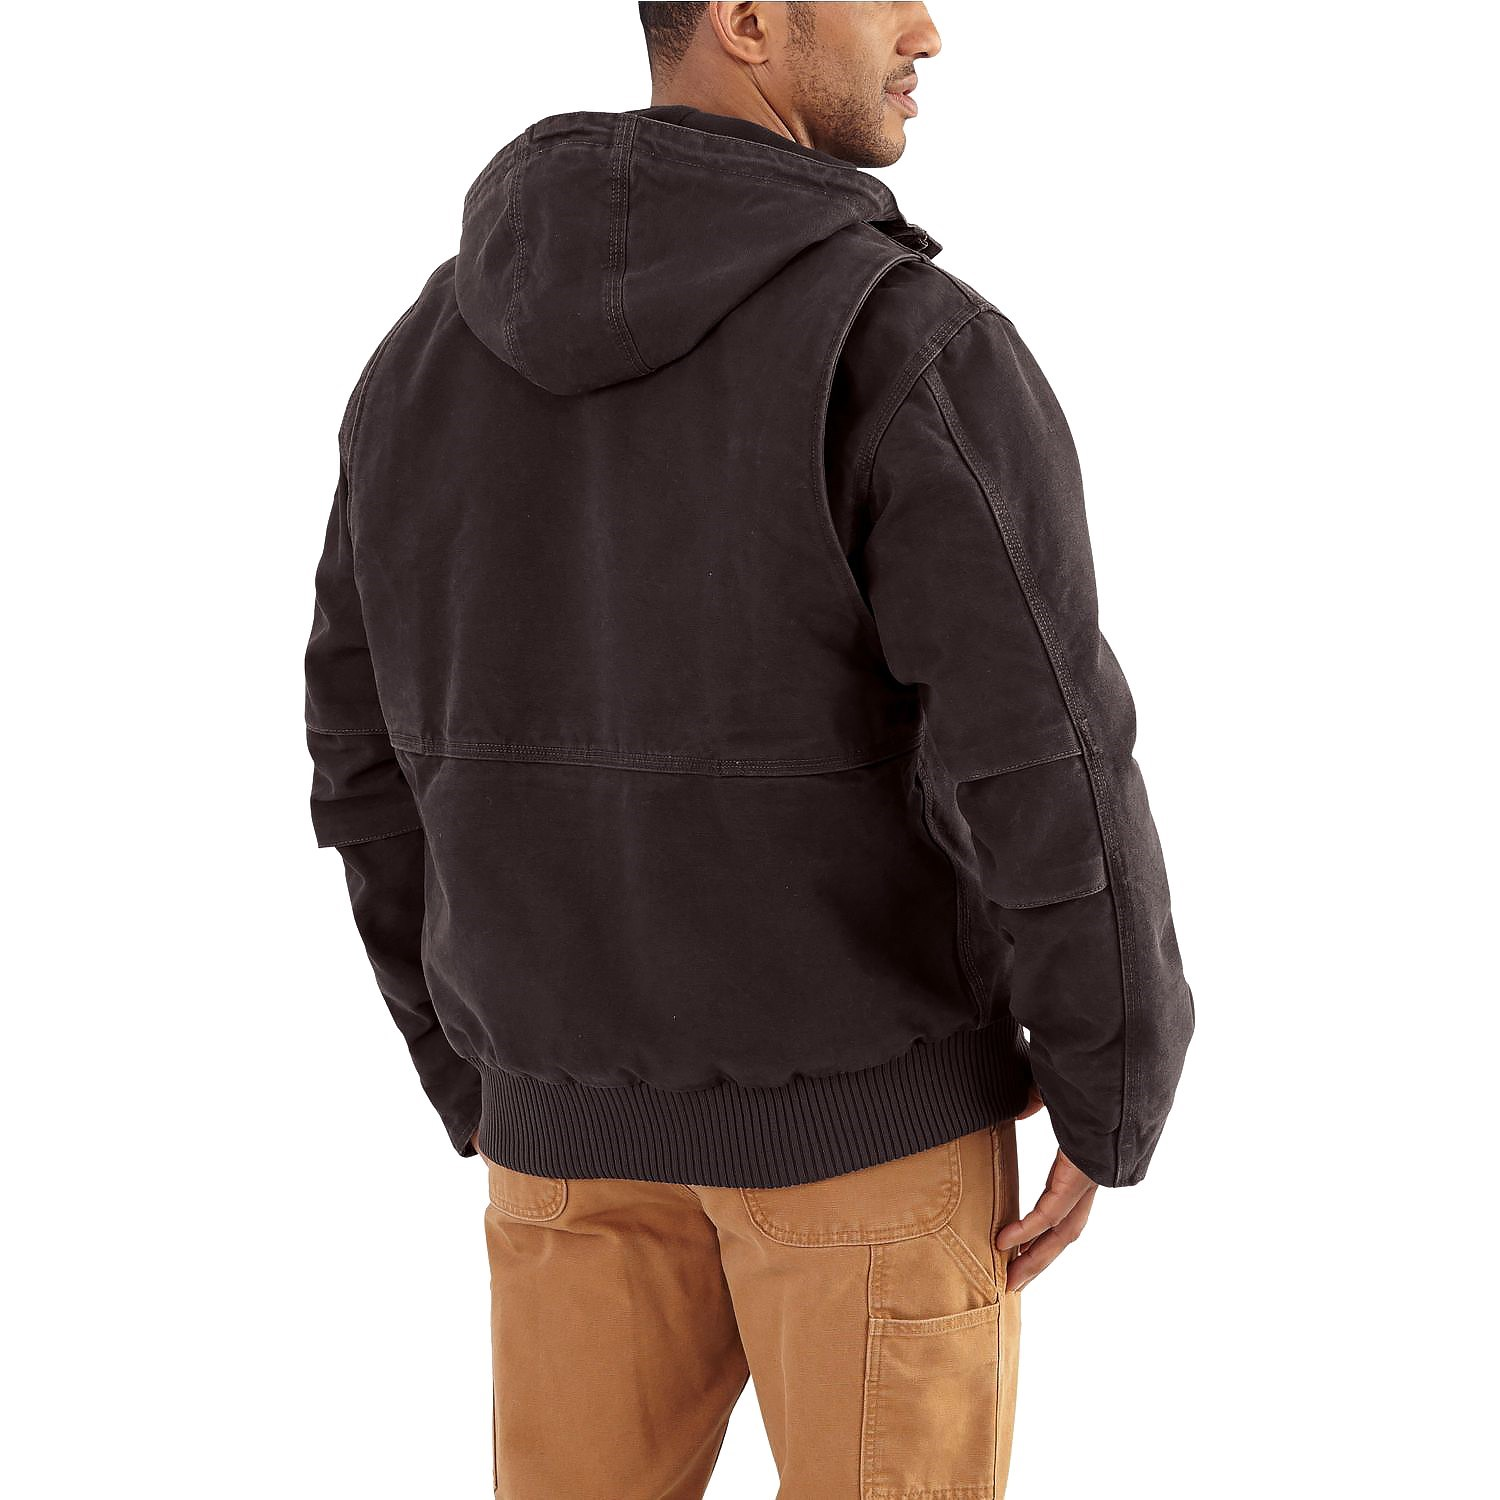 carhartt full swing armstrong active jacket for men #2: carhartt full swing armstrong active jacket factory seconds for men a 149pk 4 1500 1